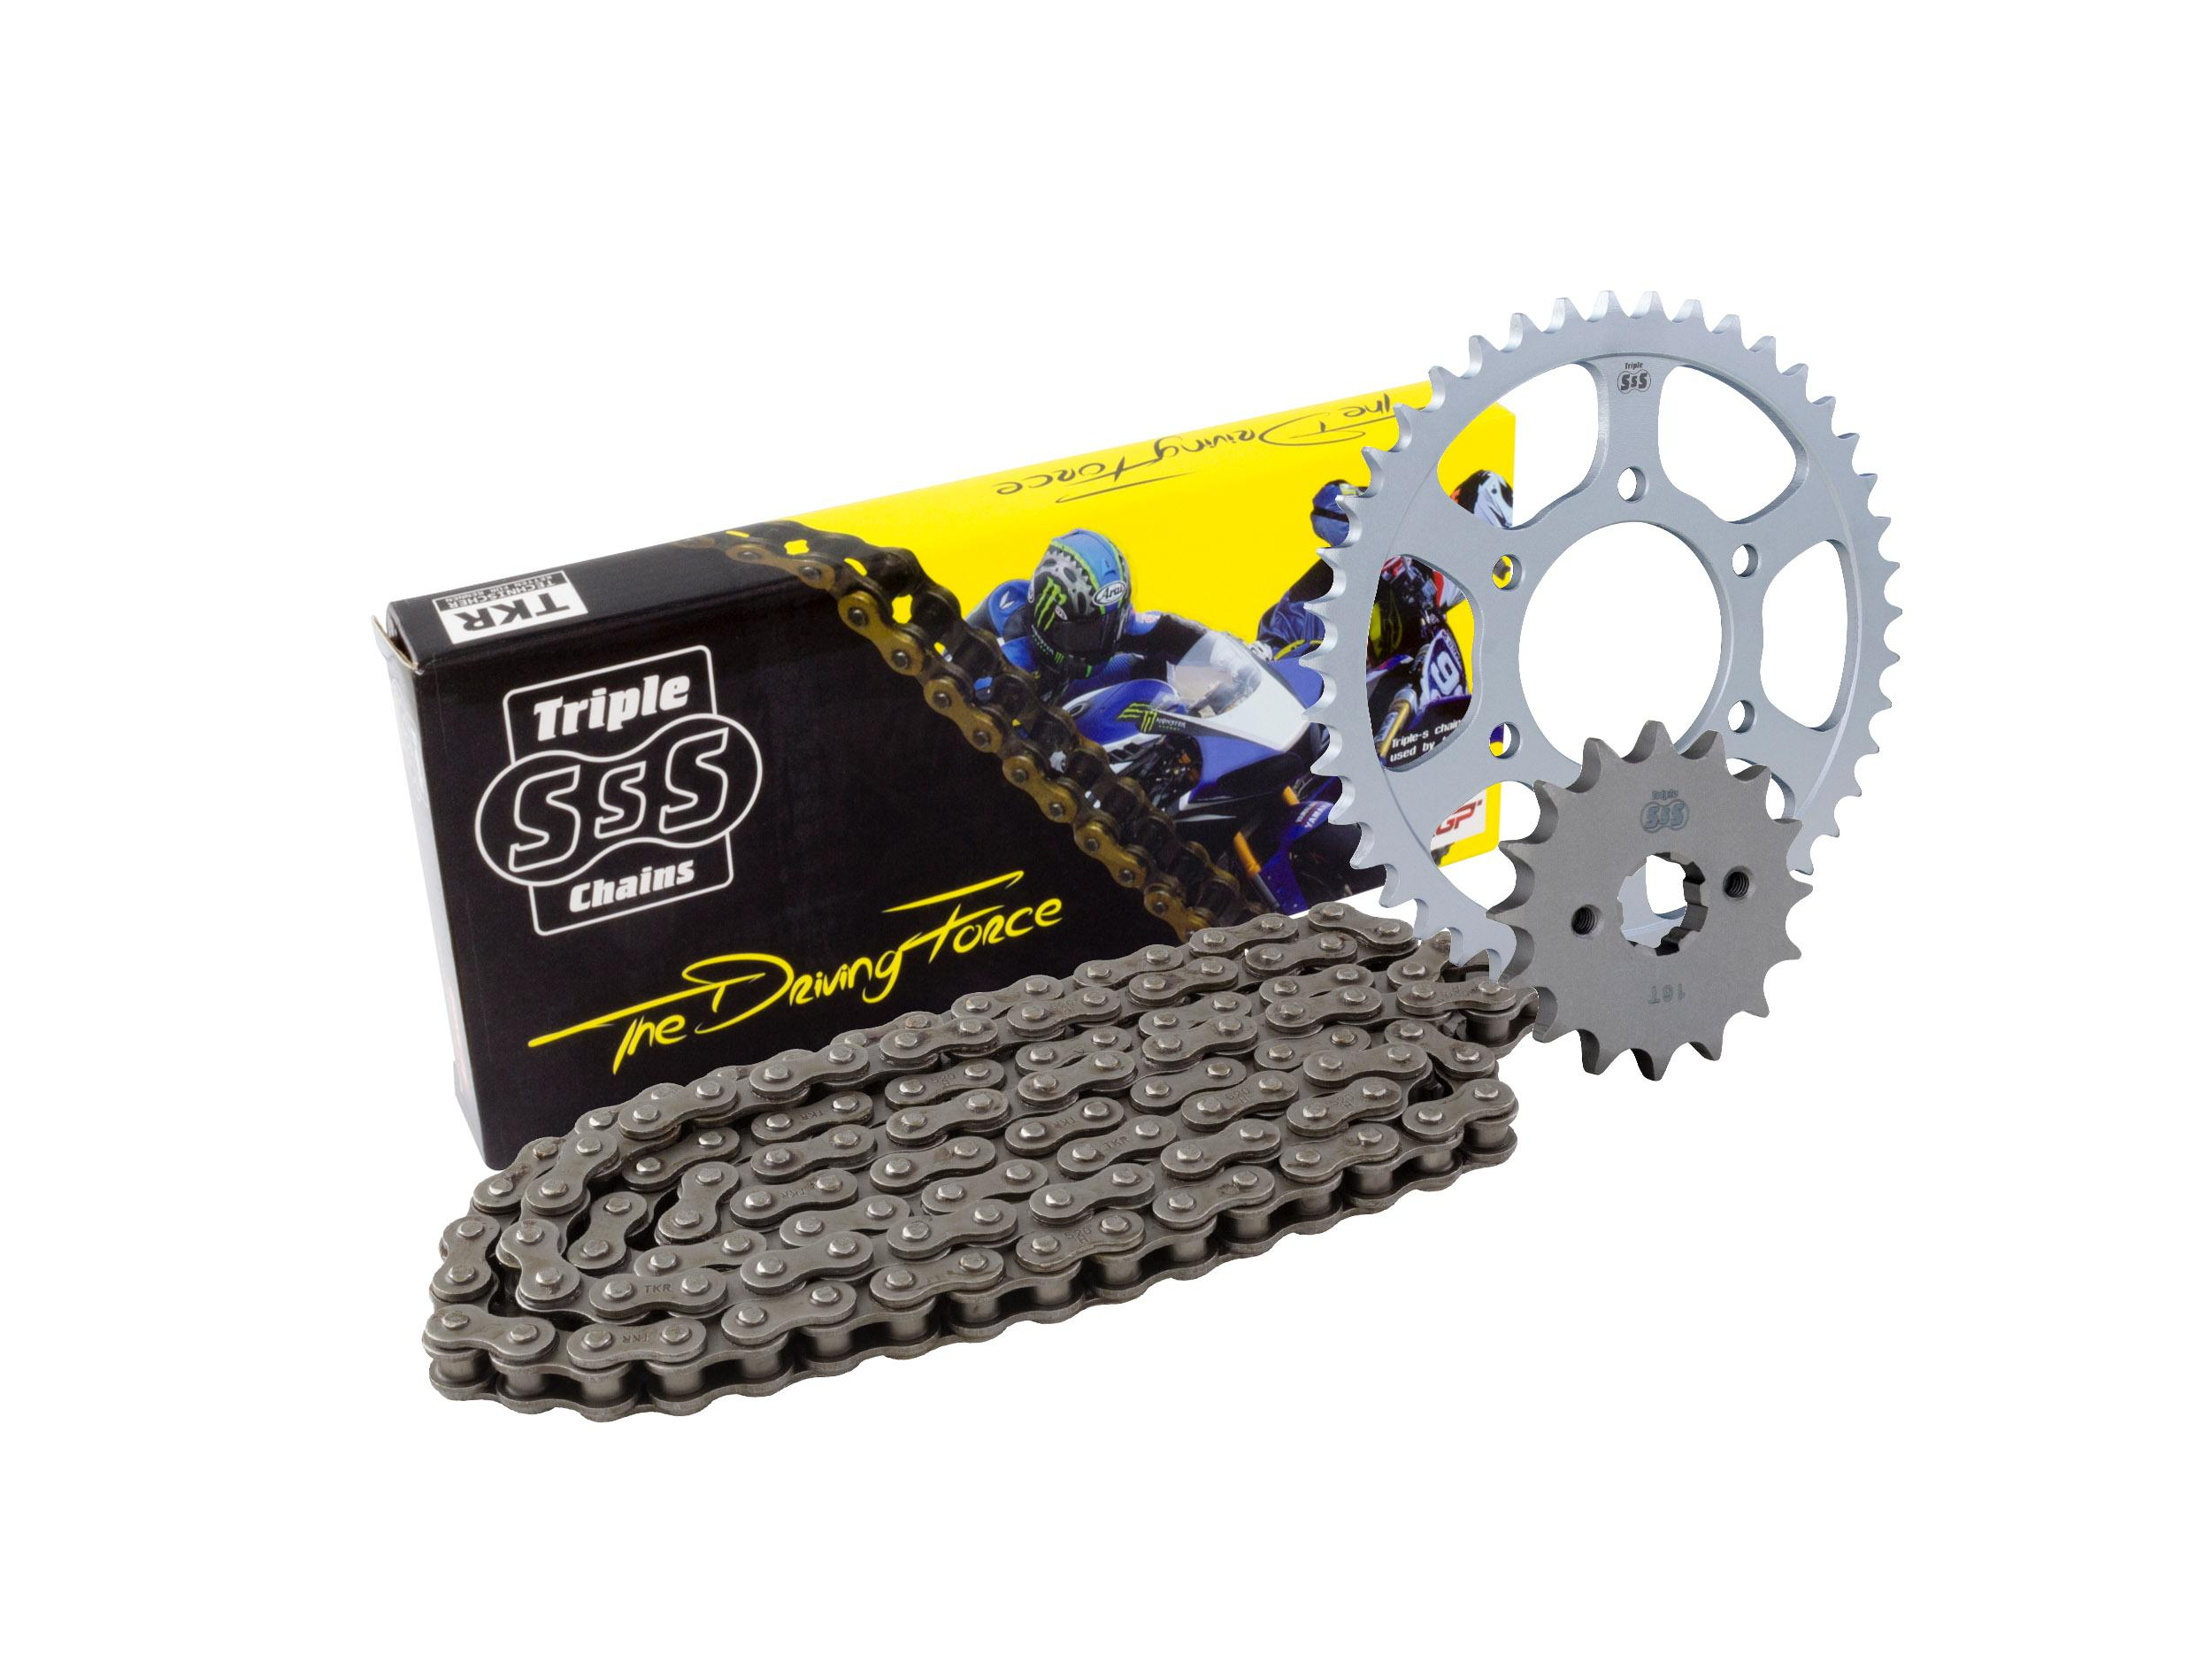 Yamaha MT125 ABS 15-16 Chain & Sprocket Kit: 14T Front, 48T Rear, HD Chain 428H 132 Link